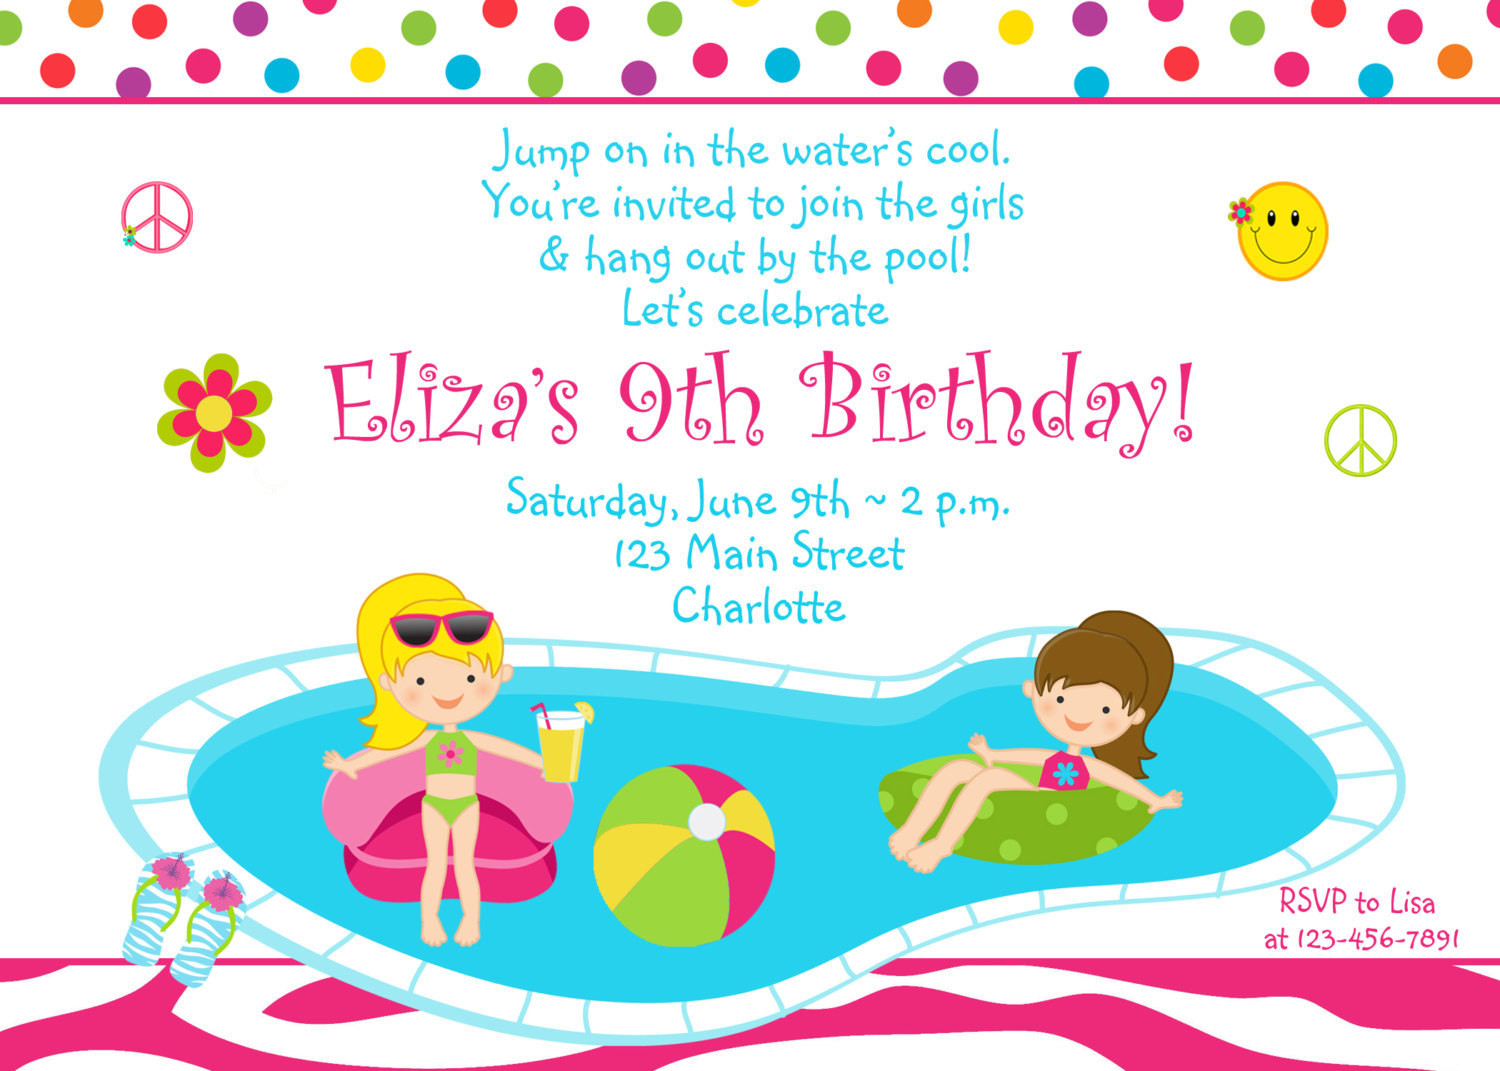 Best ideas about Swimming Birthday Party Invitations . Save or Pin Pool party birthday invitation girls pool party zebra Now.